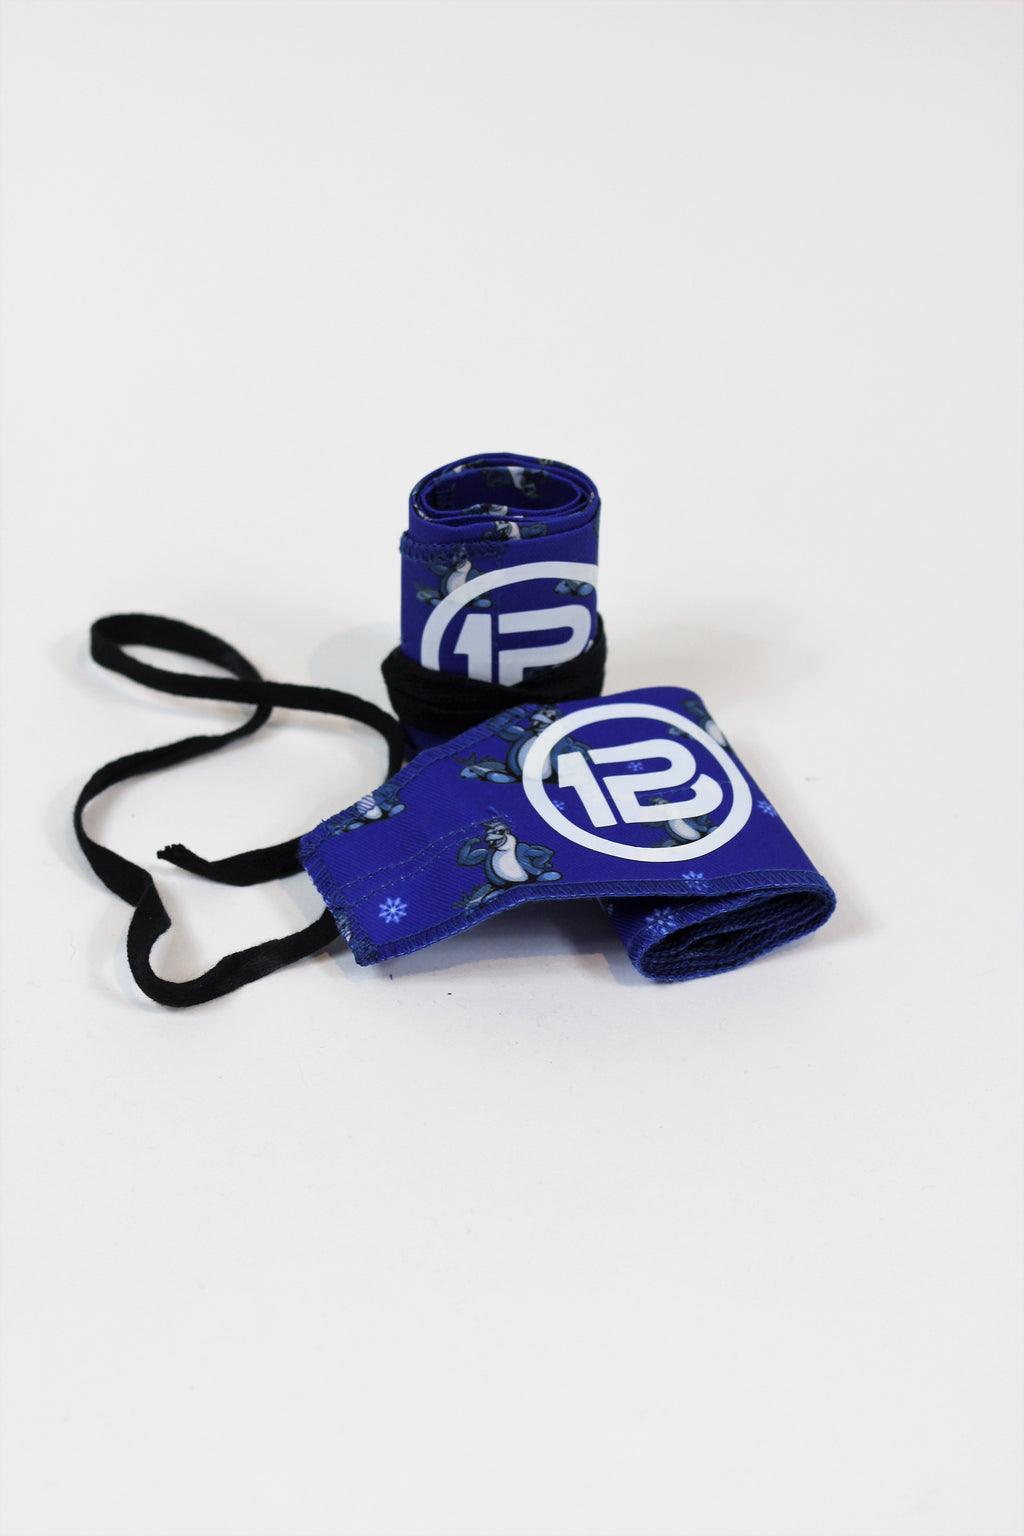 1PB - Penguin Wrist Wraps